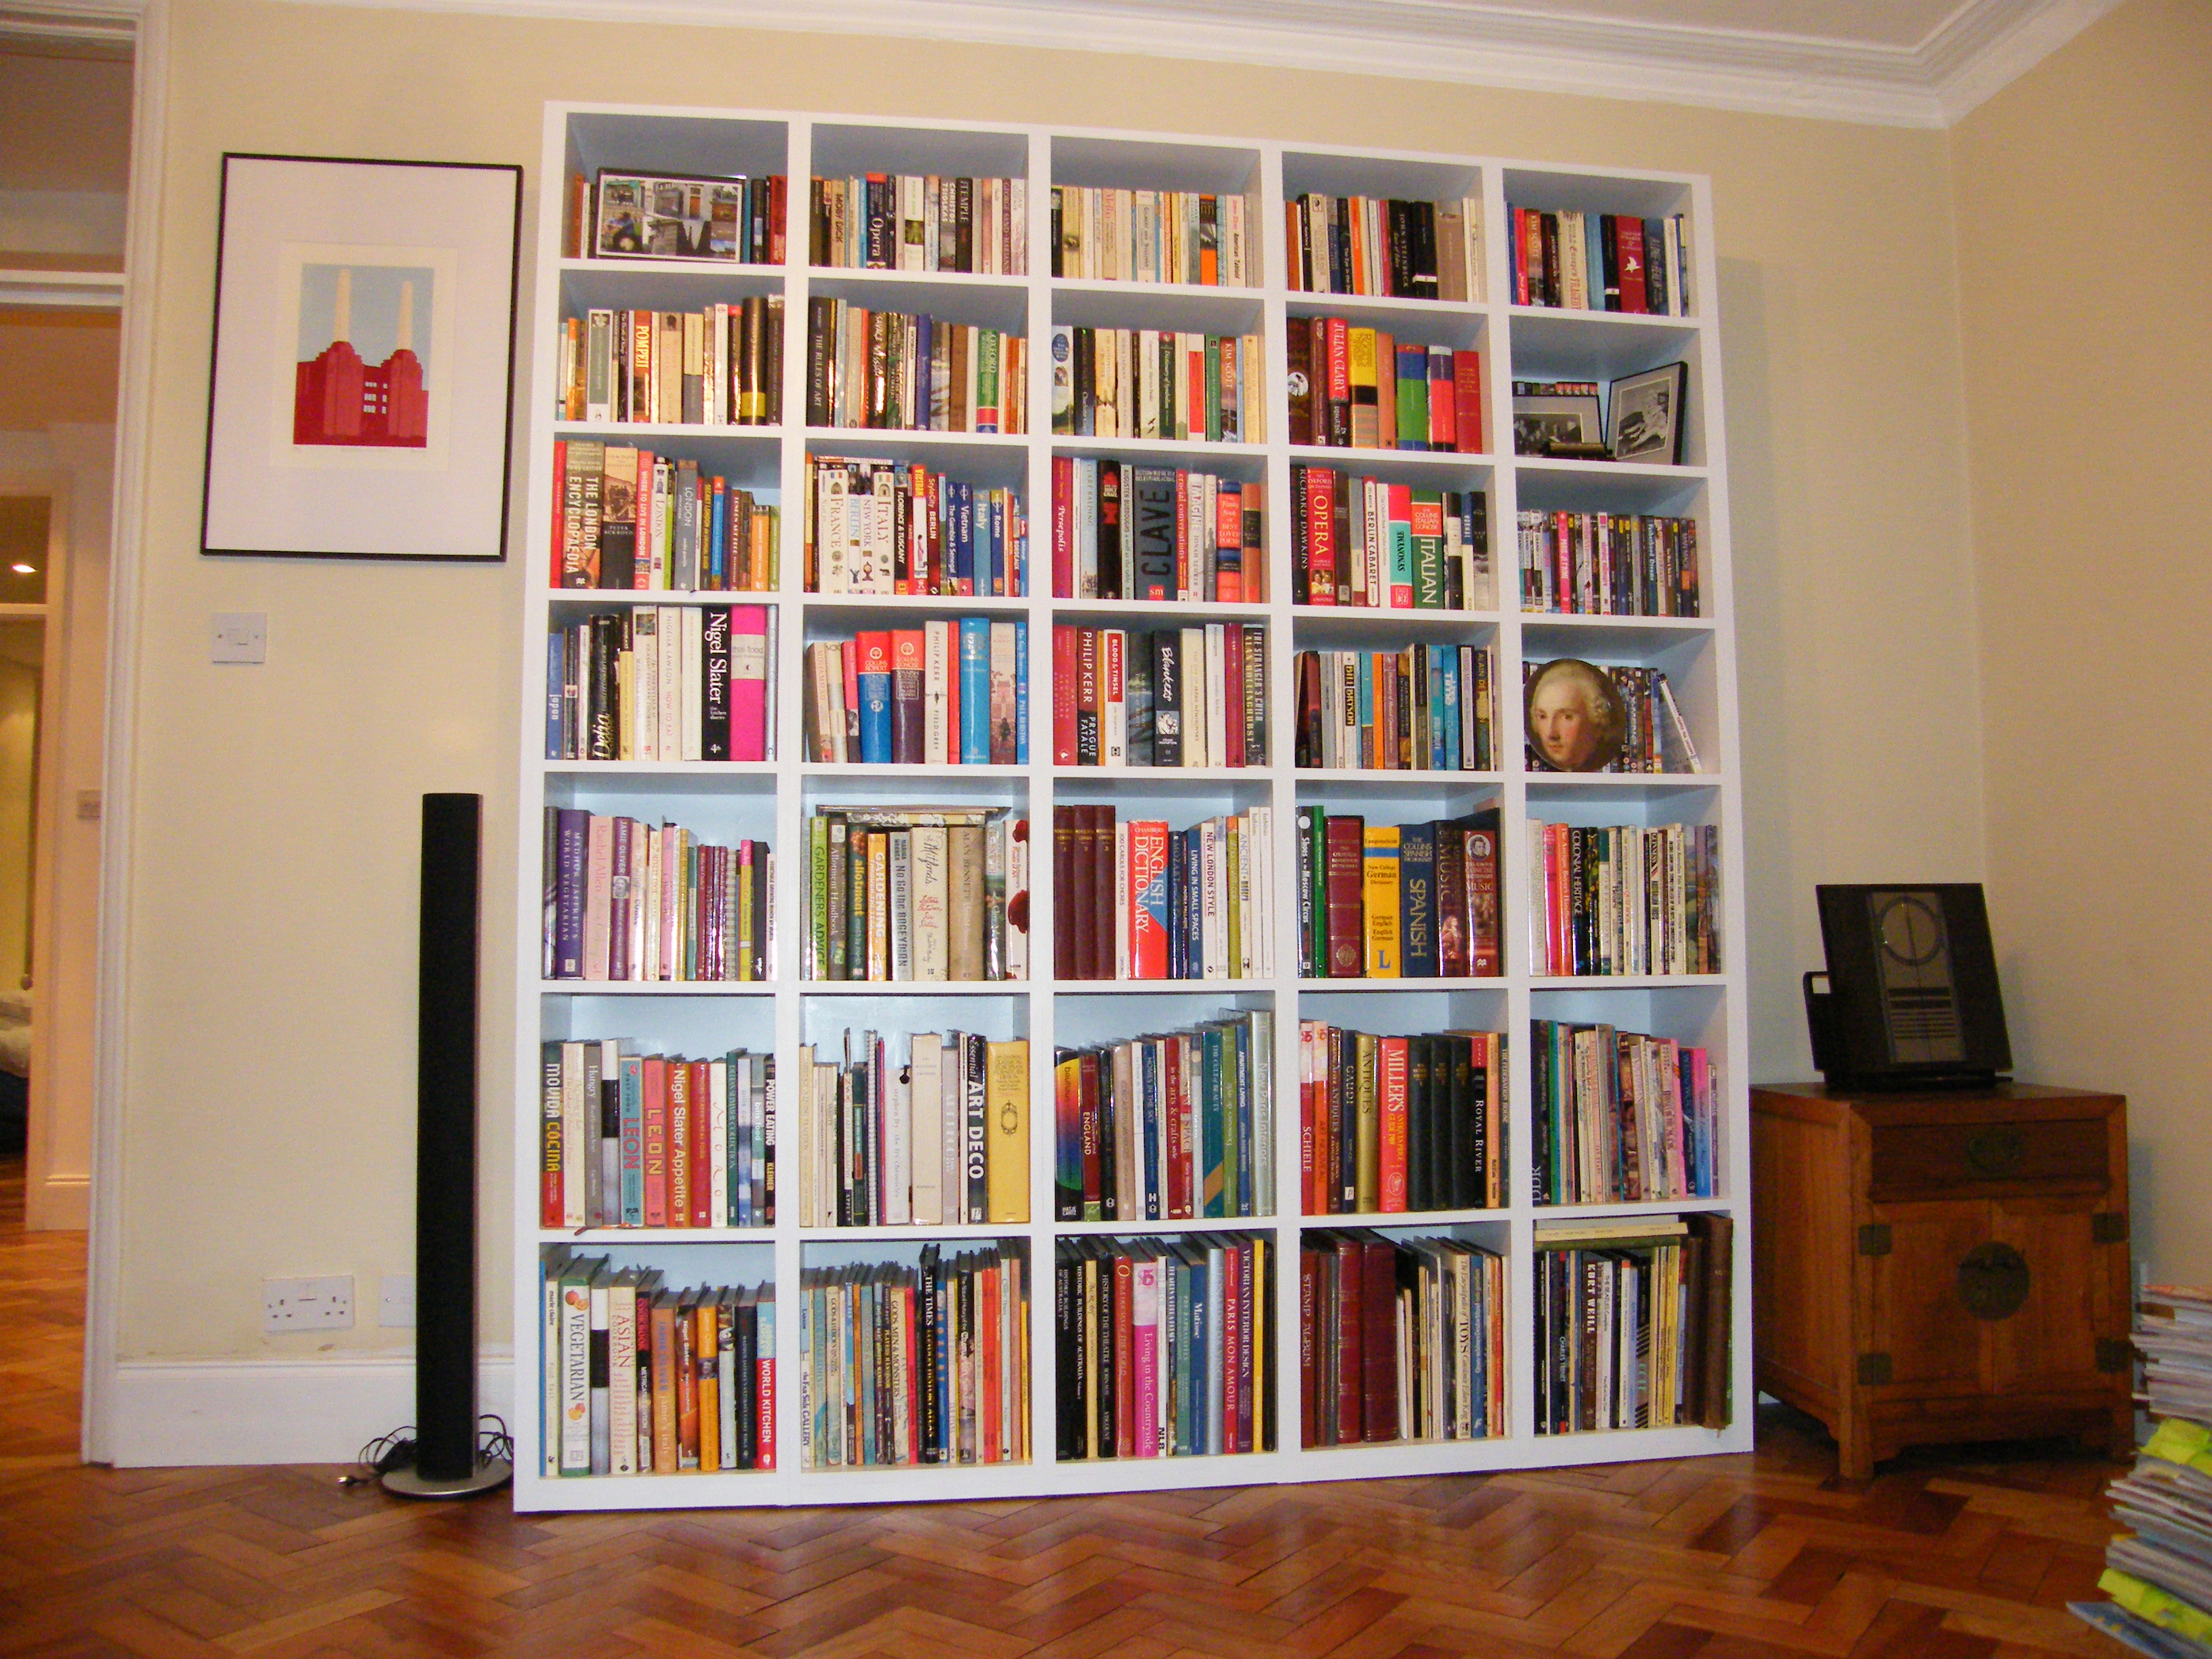 Design Free Standing Bookshelves shelving bookcases brian white carpentry modern freestanding bookcase without mouldings crystal palace se19